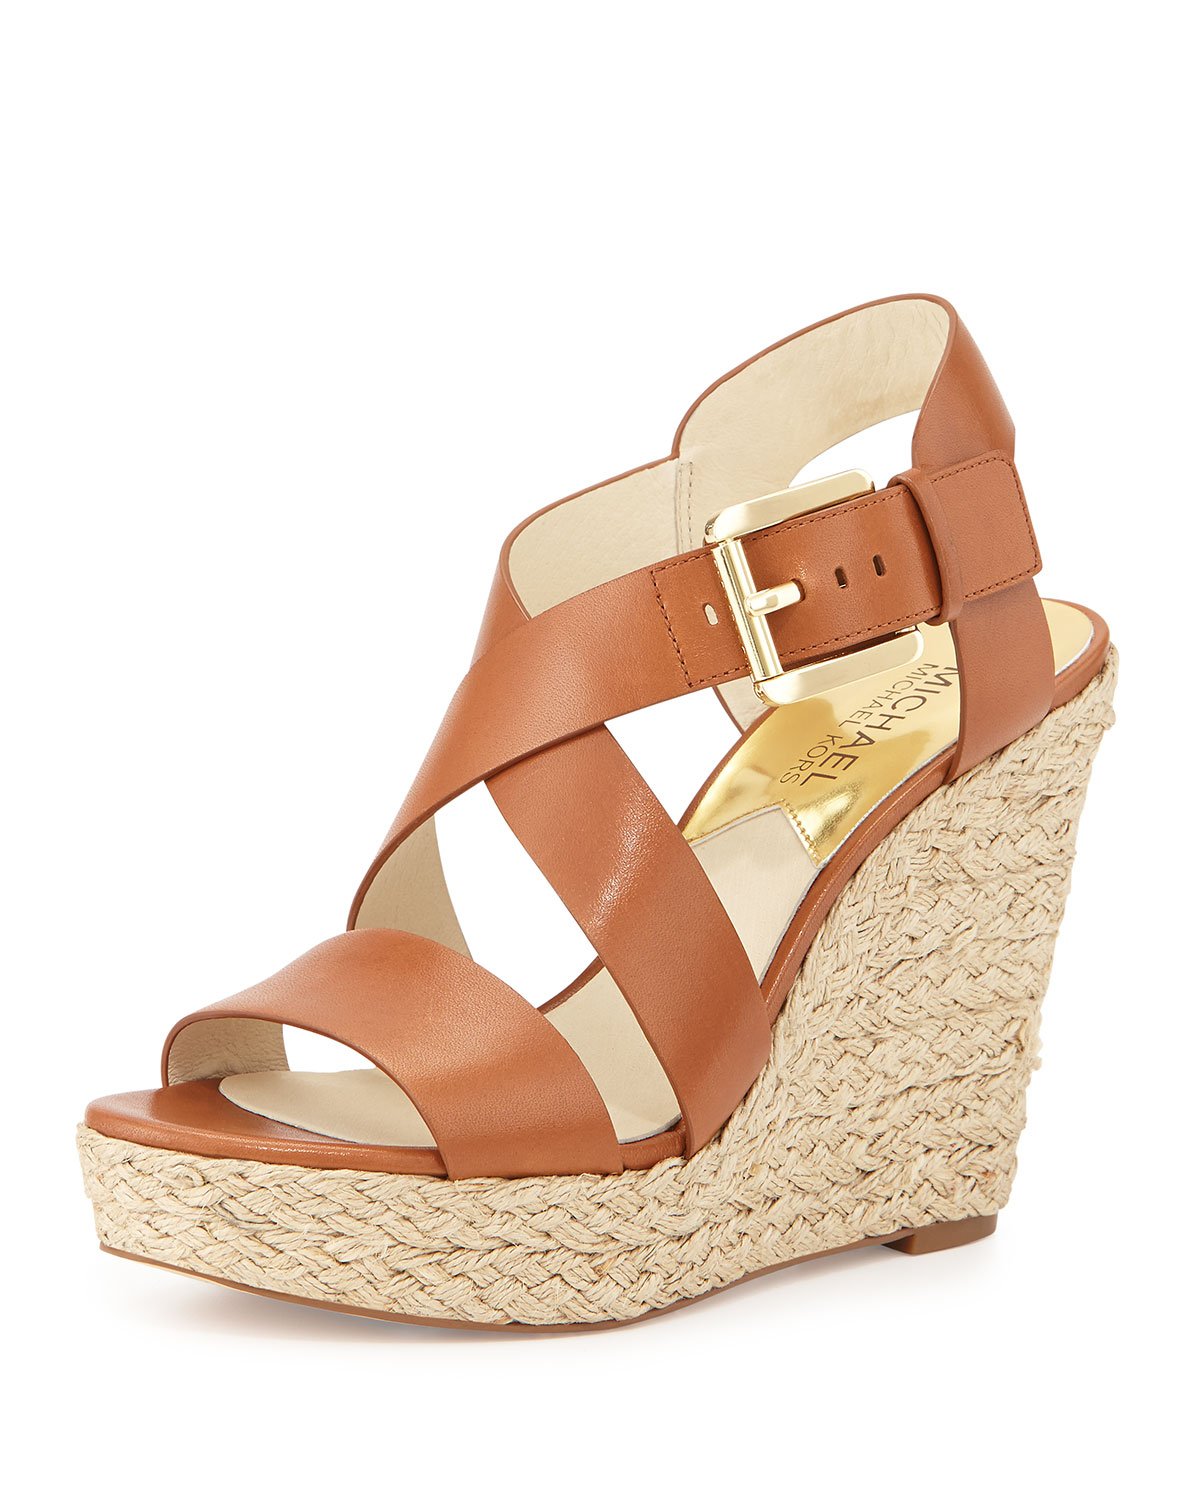 6d6c98732bd7 MICHAEL Michael Kors Giovanna Leather Espadrille Wedge Sandal ...